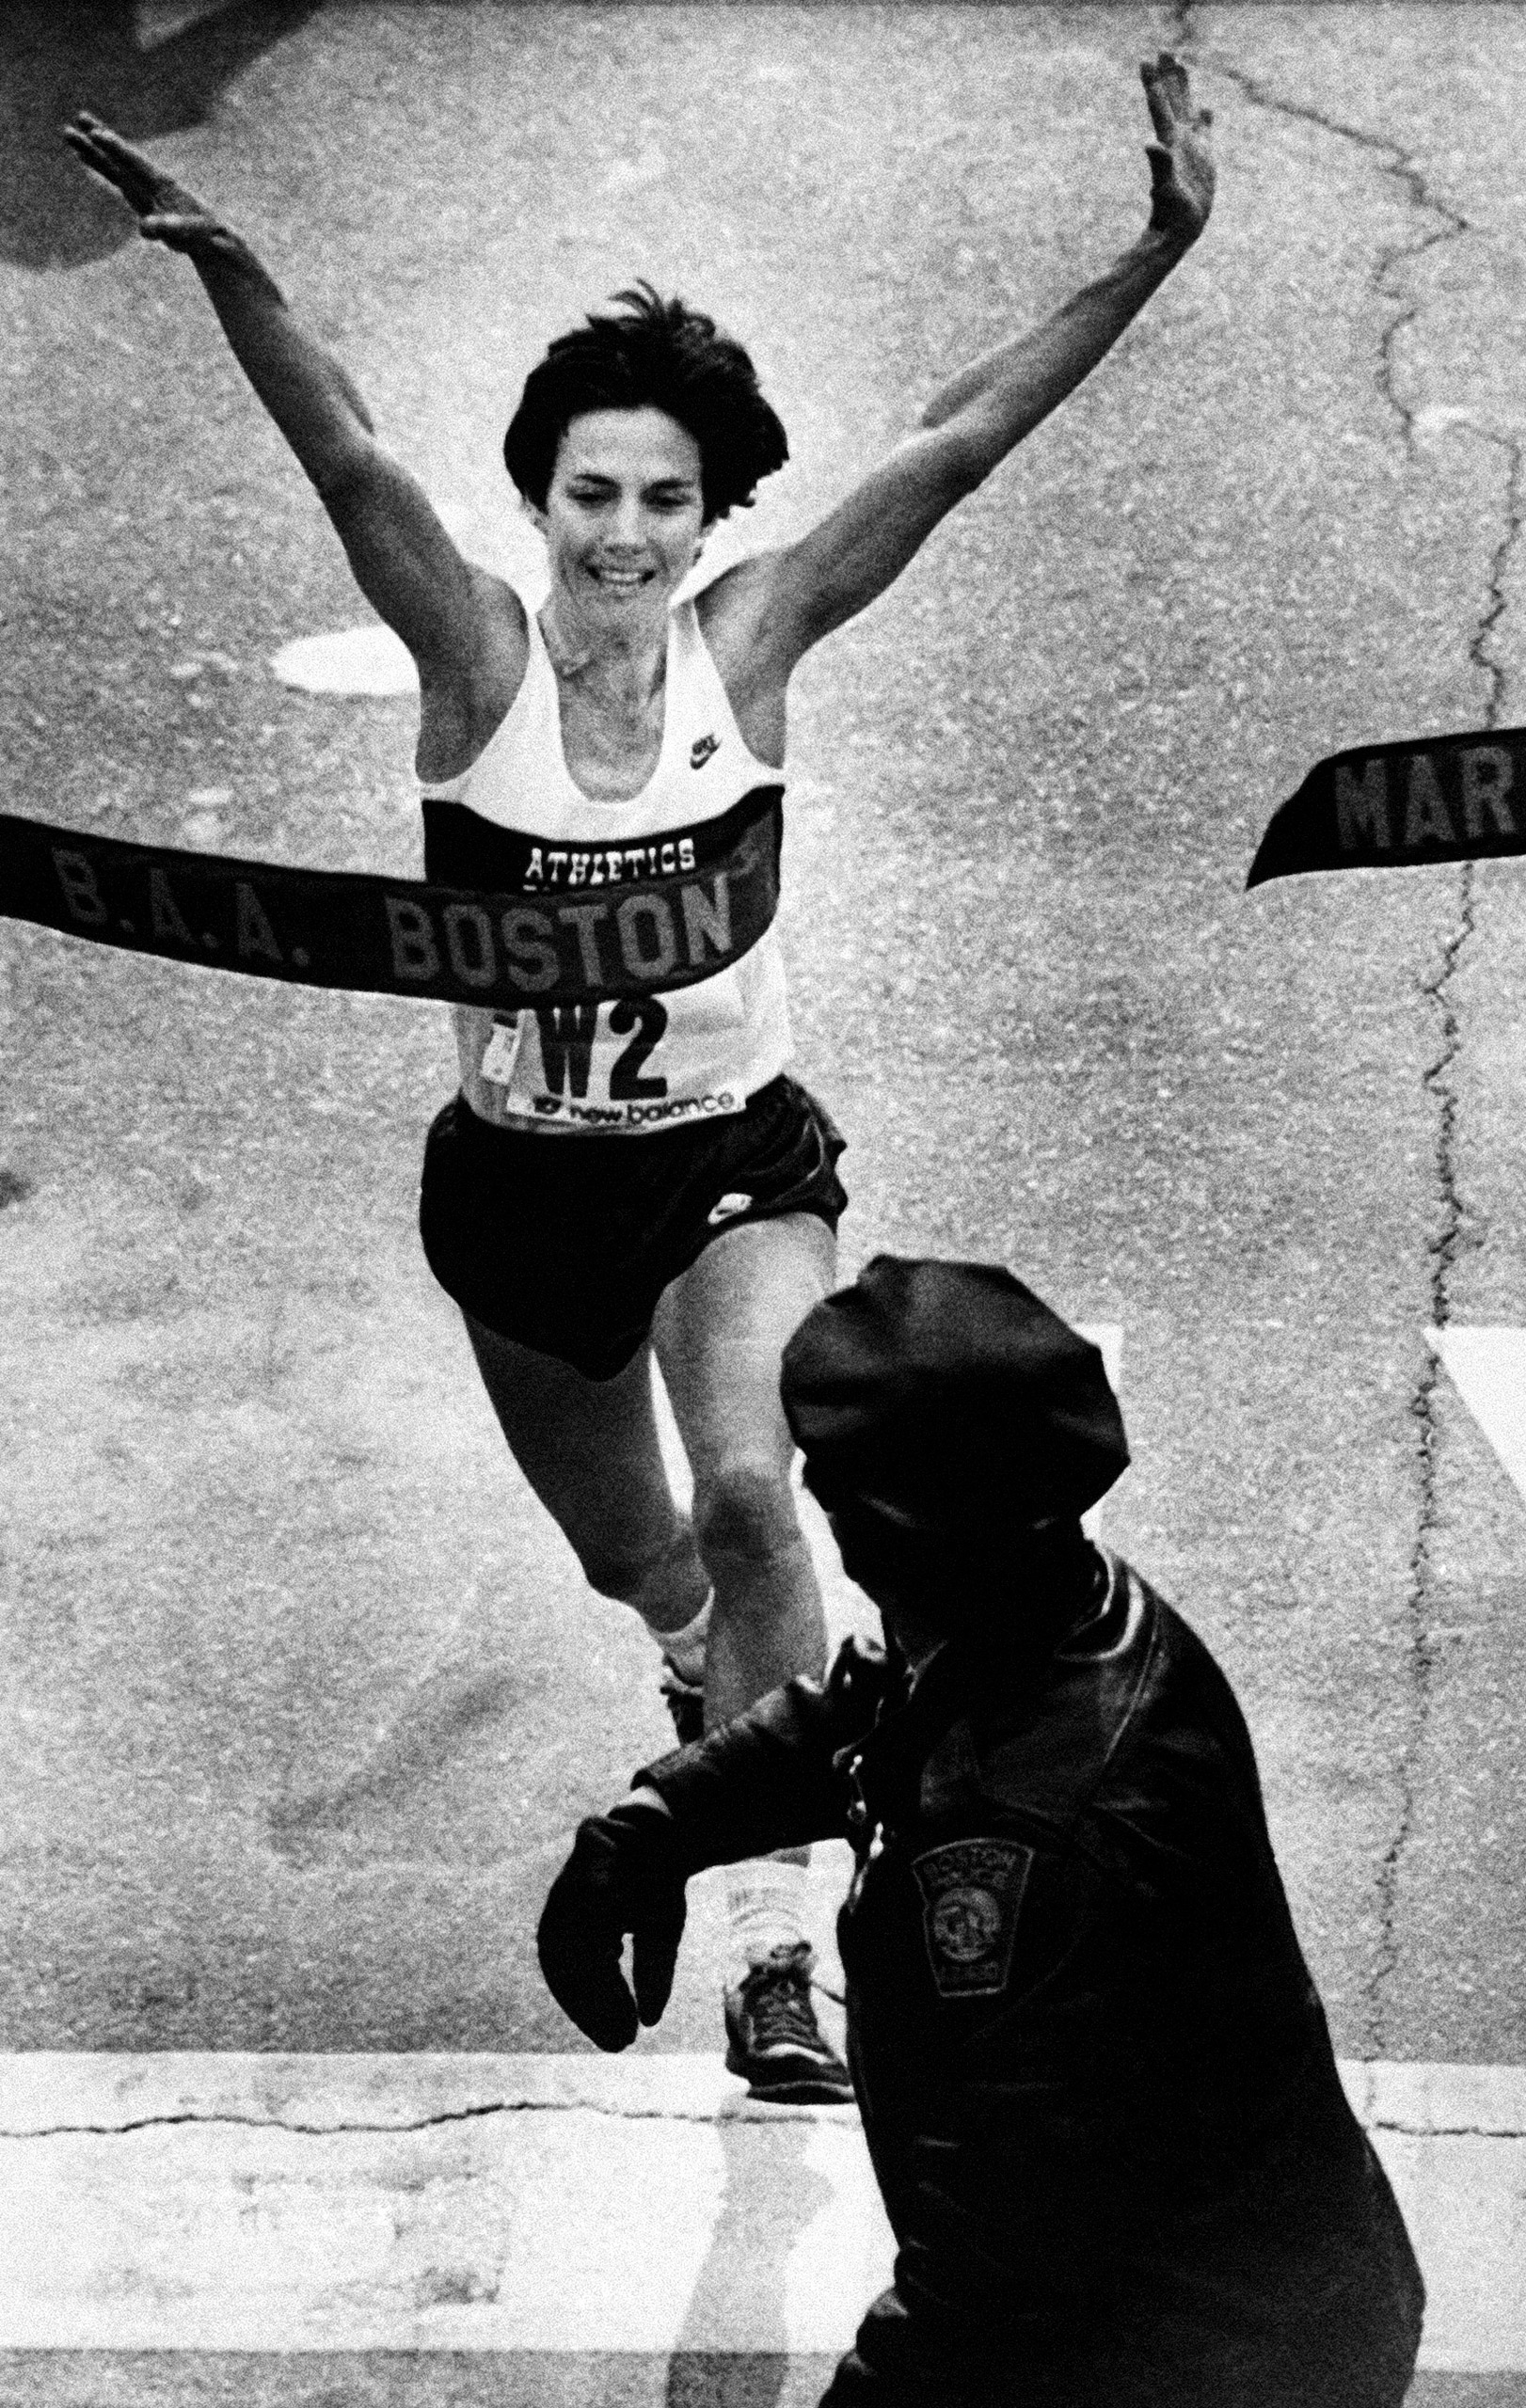 Joan Benoit crosses the finish line Apr. 18, 1983 in Boston to win the women's division of the Boston Marathon in 2:22:42, shattering the world women's marathon mark by nearly three minutes.